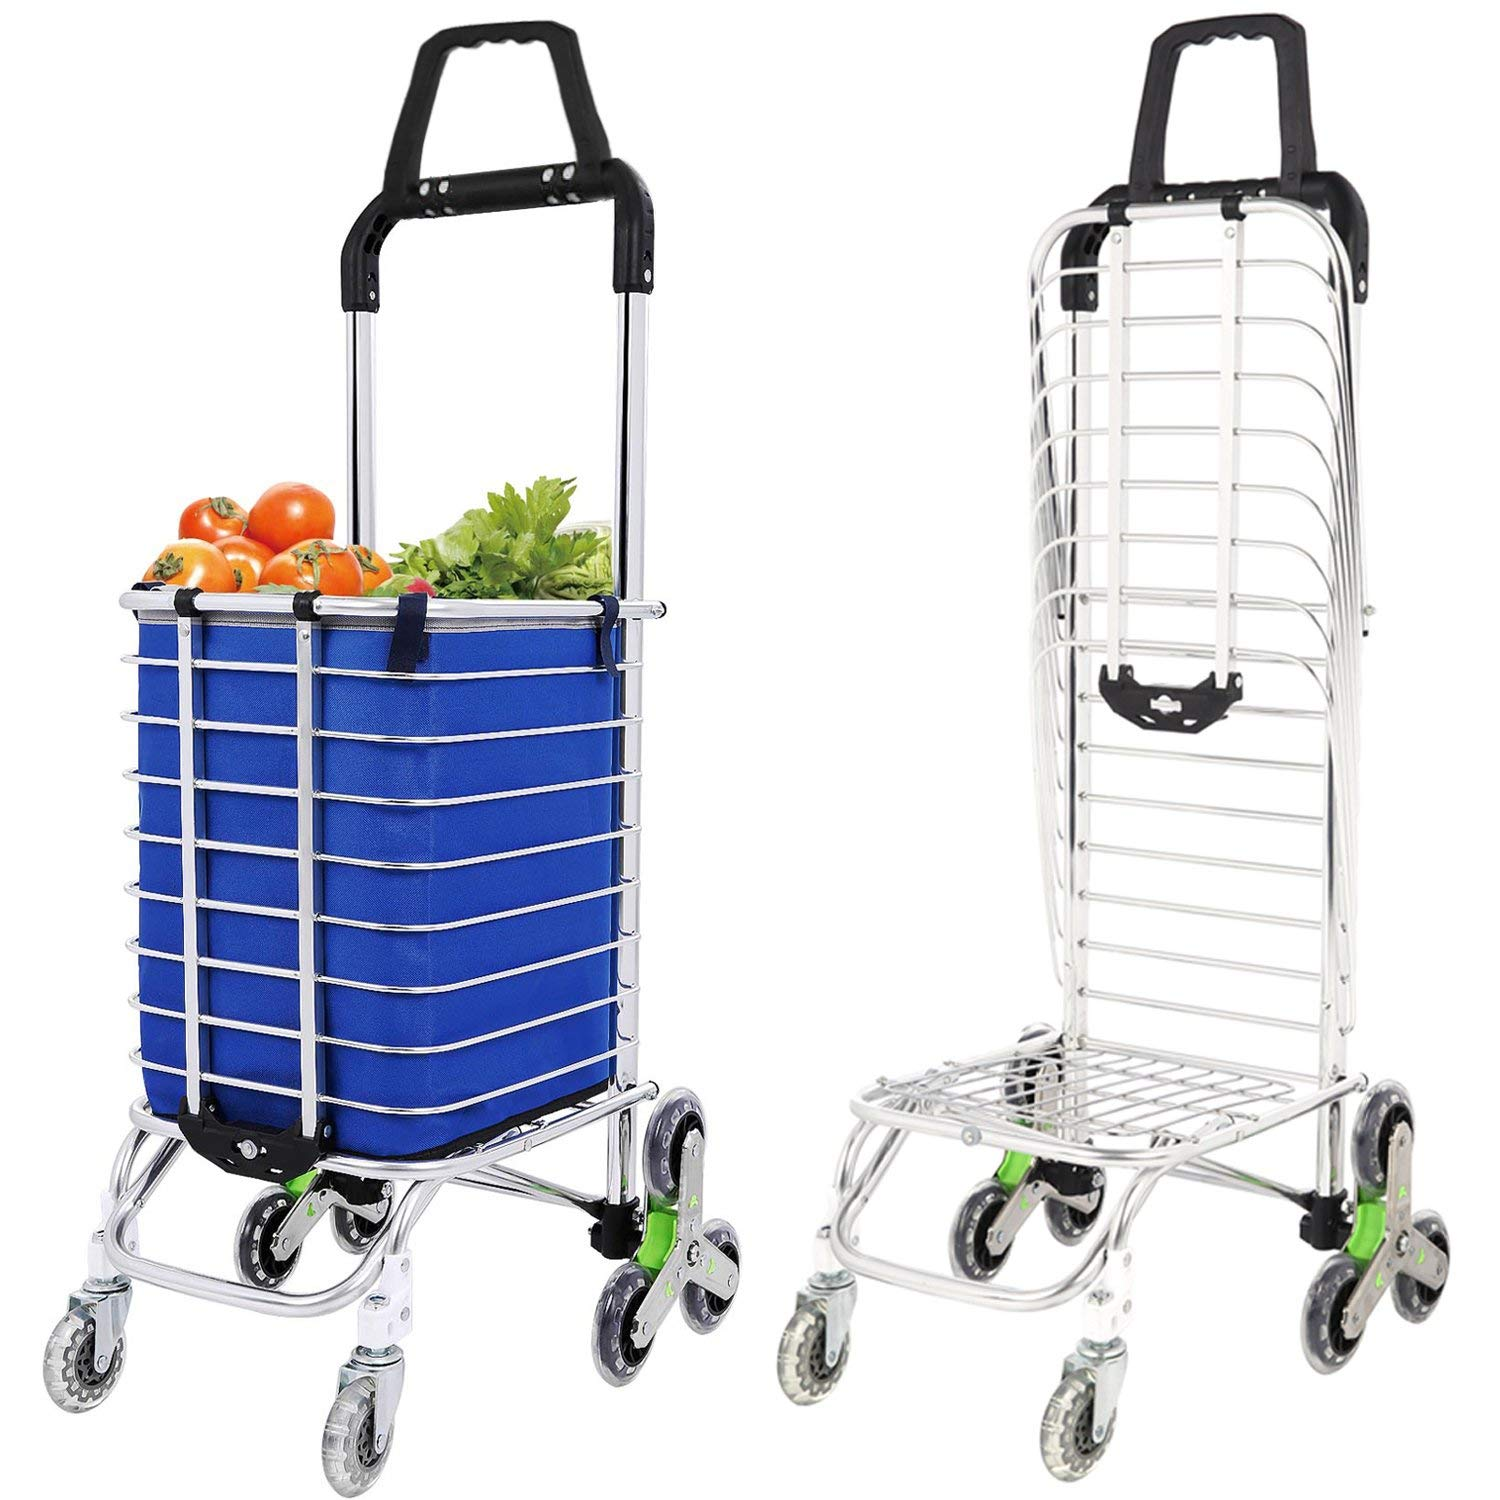 Large Capacity Shopping Trolley on Wheels Folding Shopping Cart with Removable